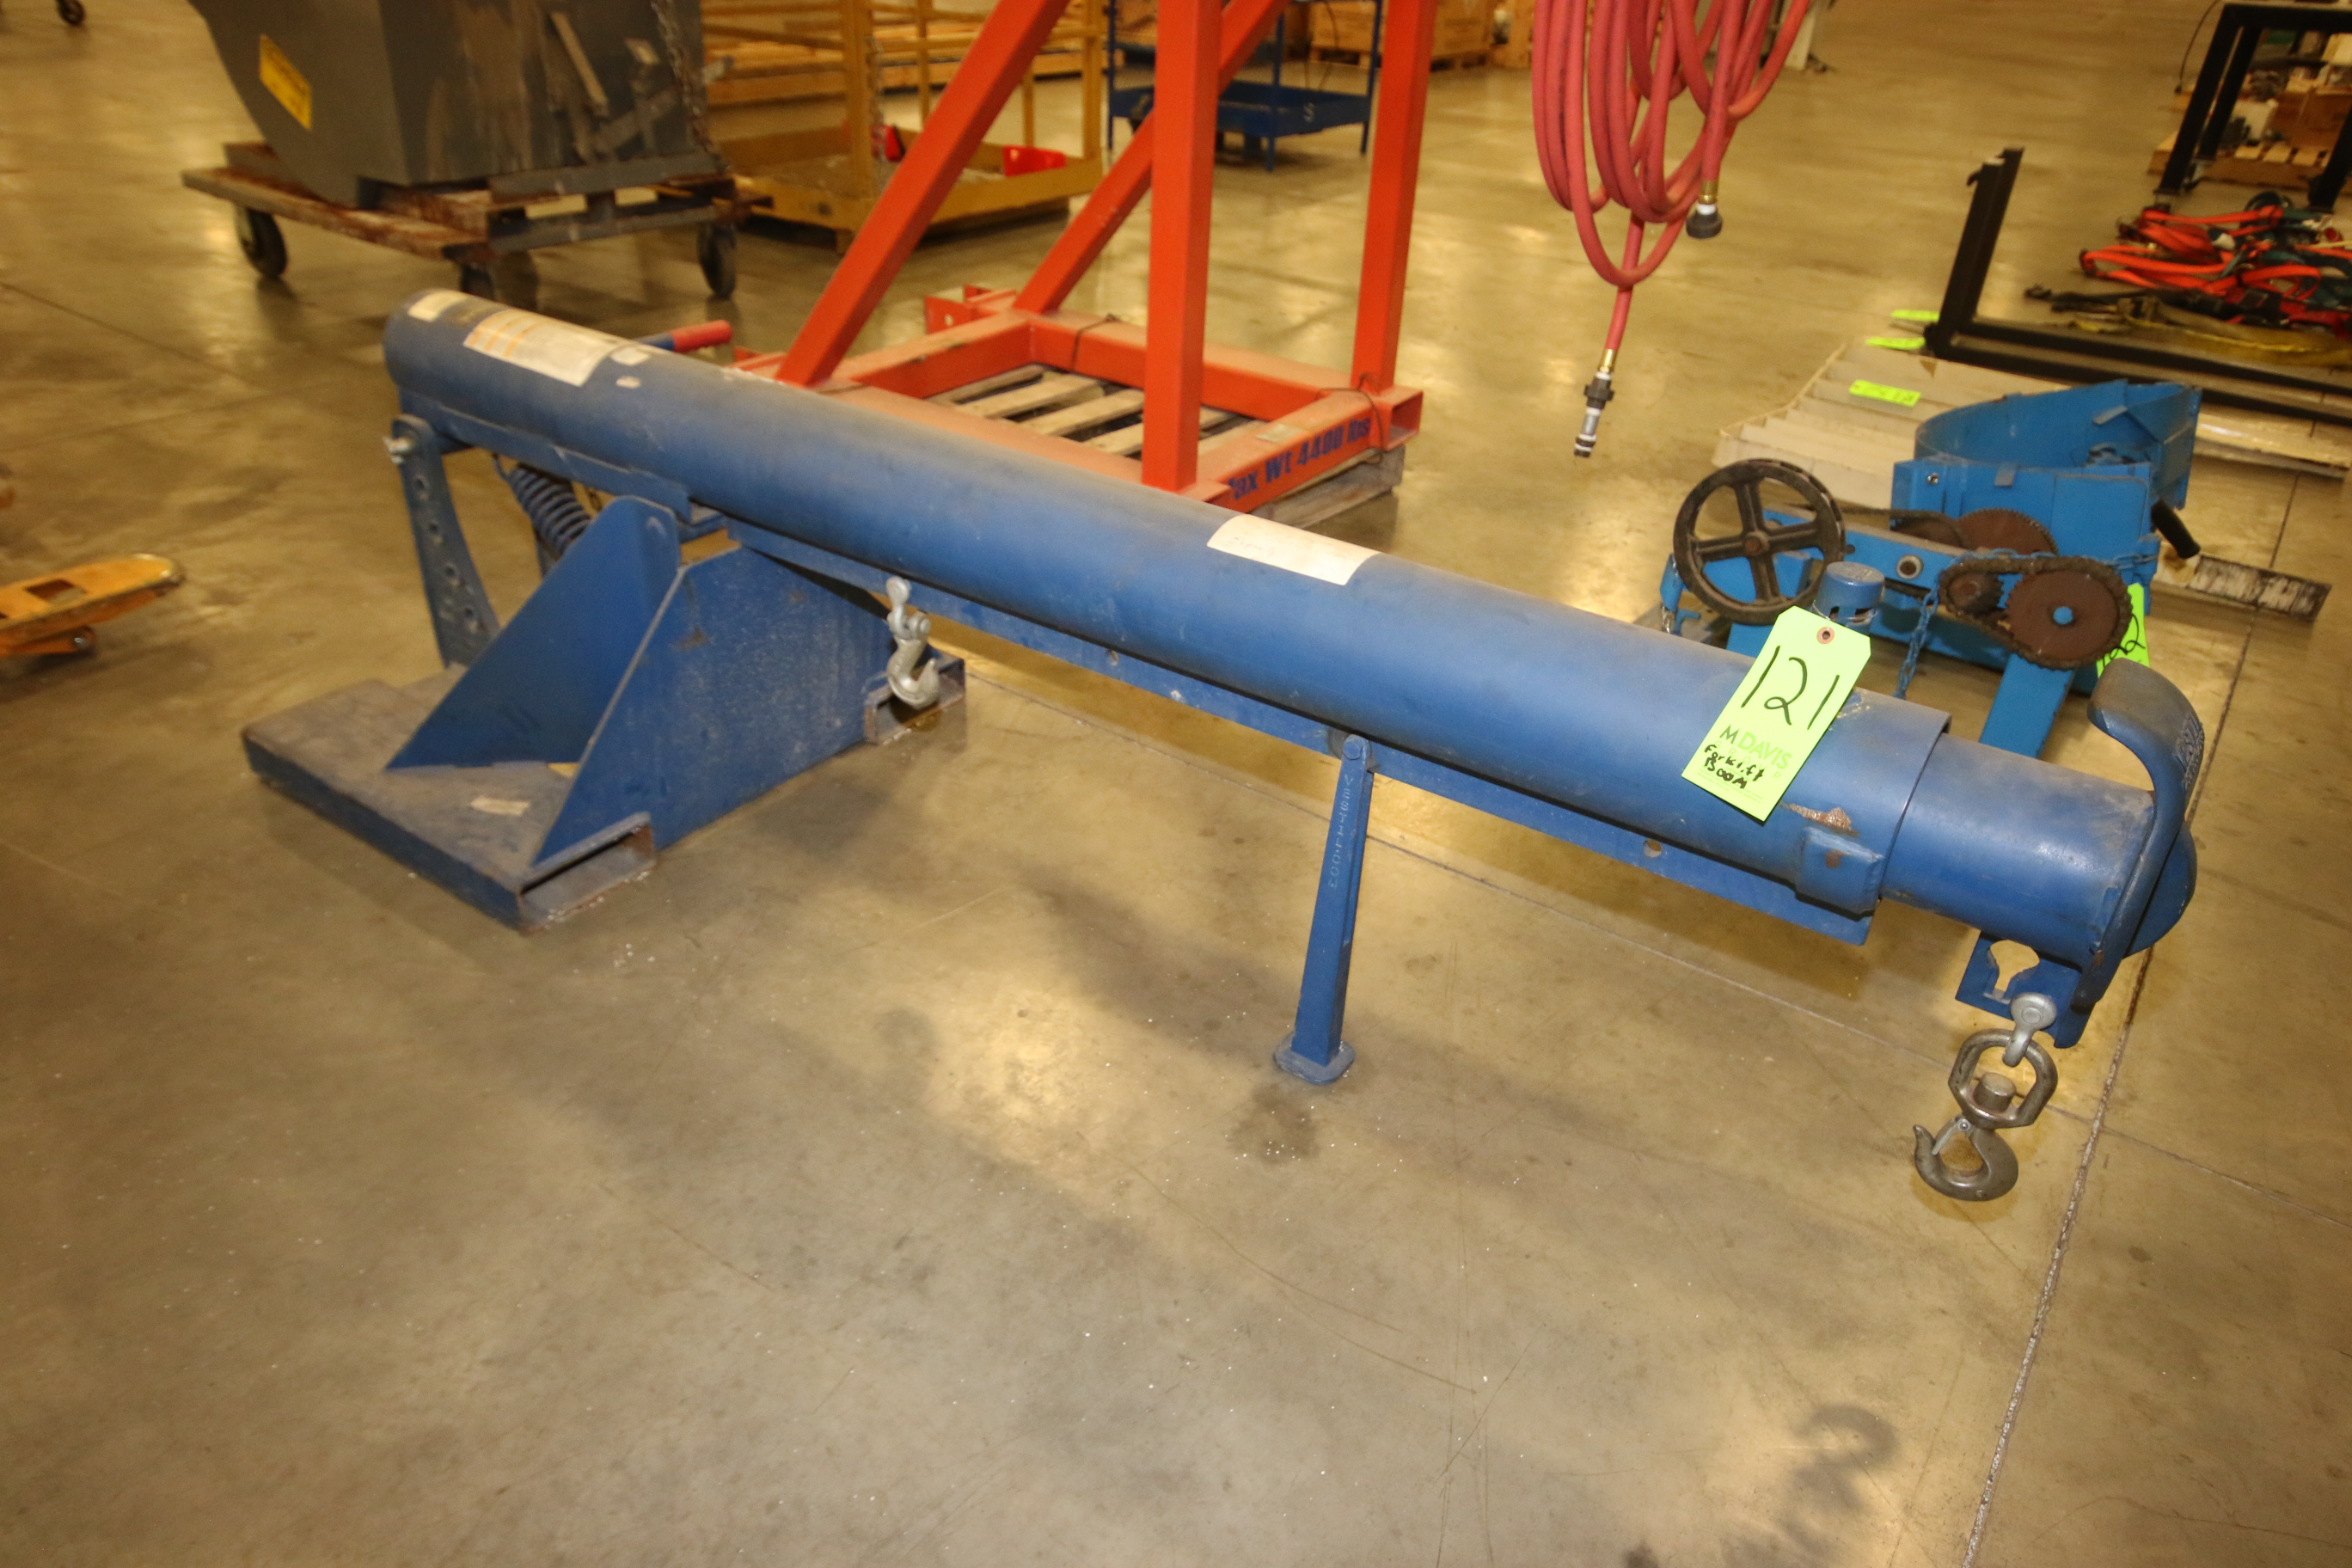 Lot 121 - 2010 Vestil Forklift Boom Attachment, M/N LM-OBT-4, Capacity: 4,000 lbs., with Adjustable Extention